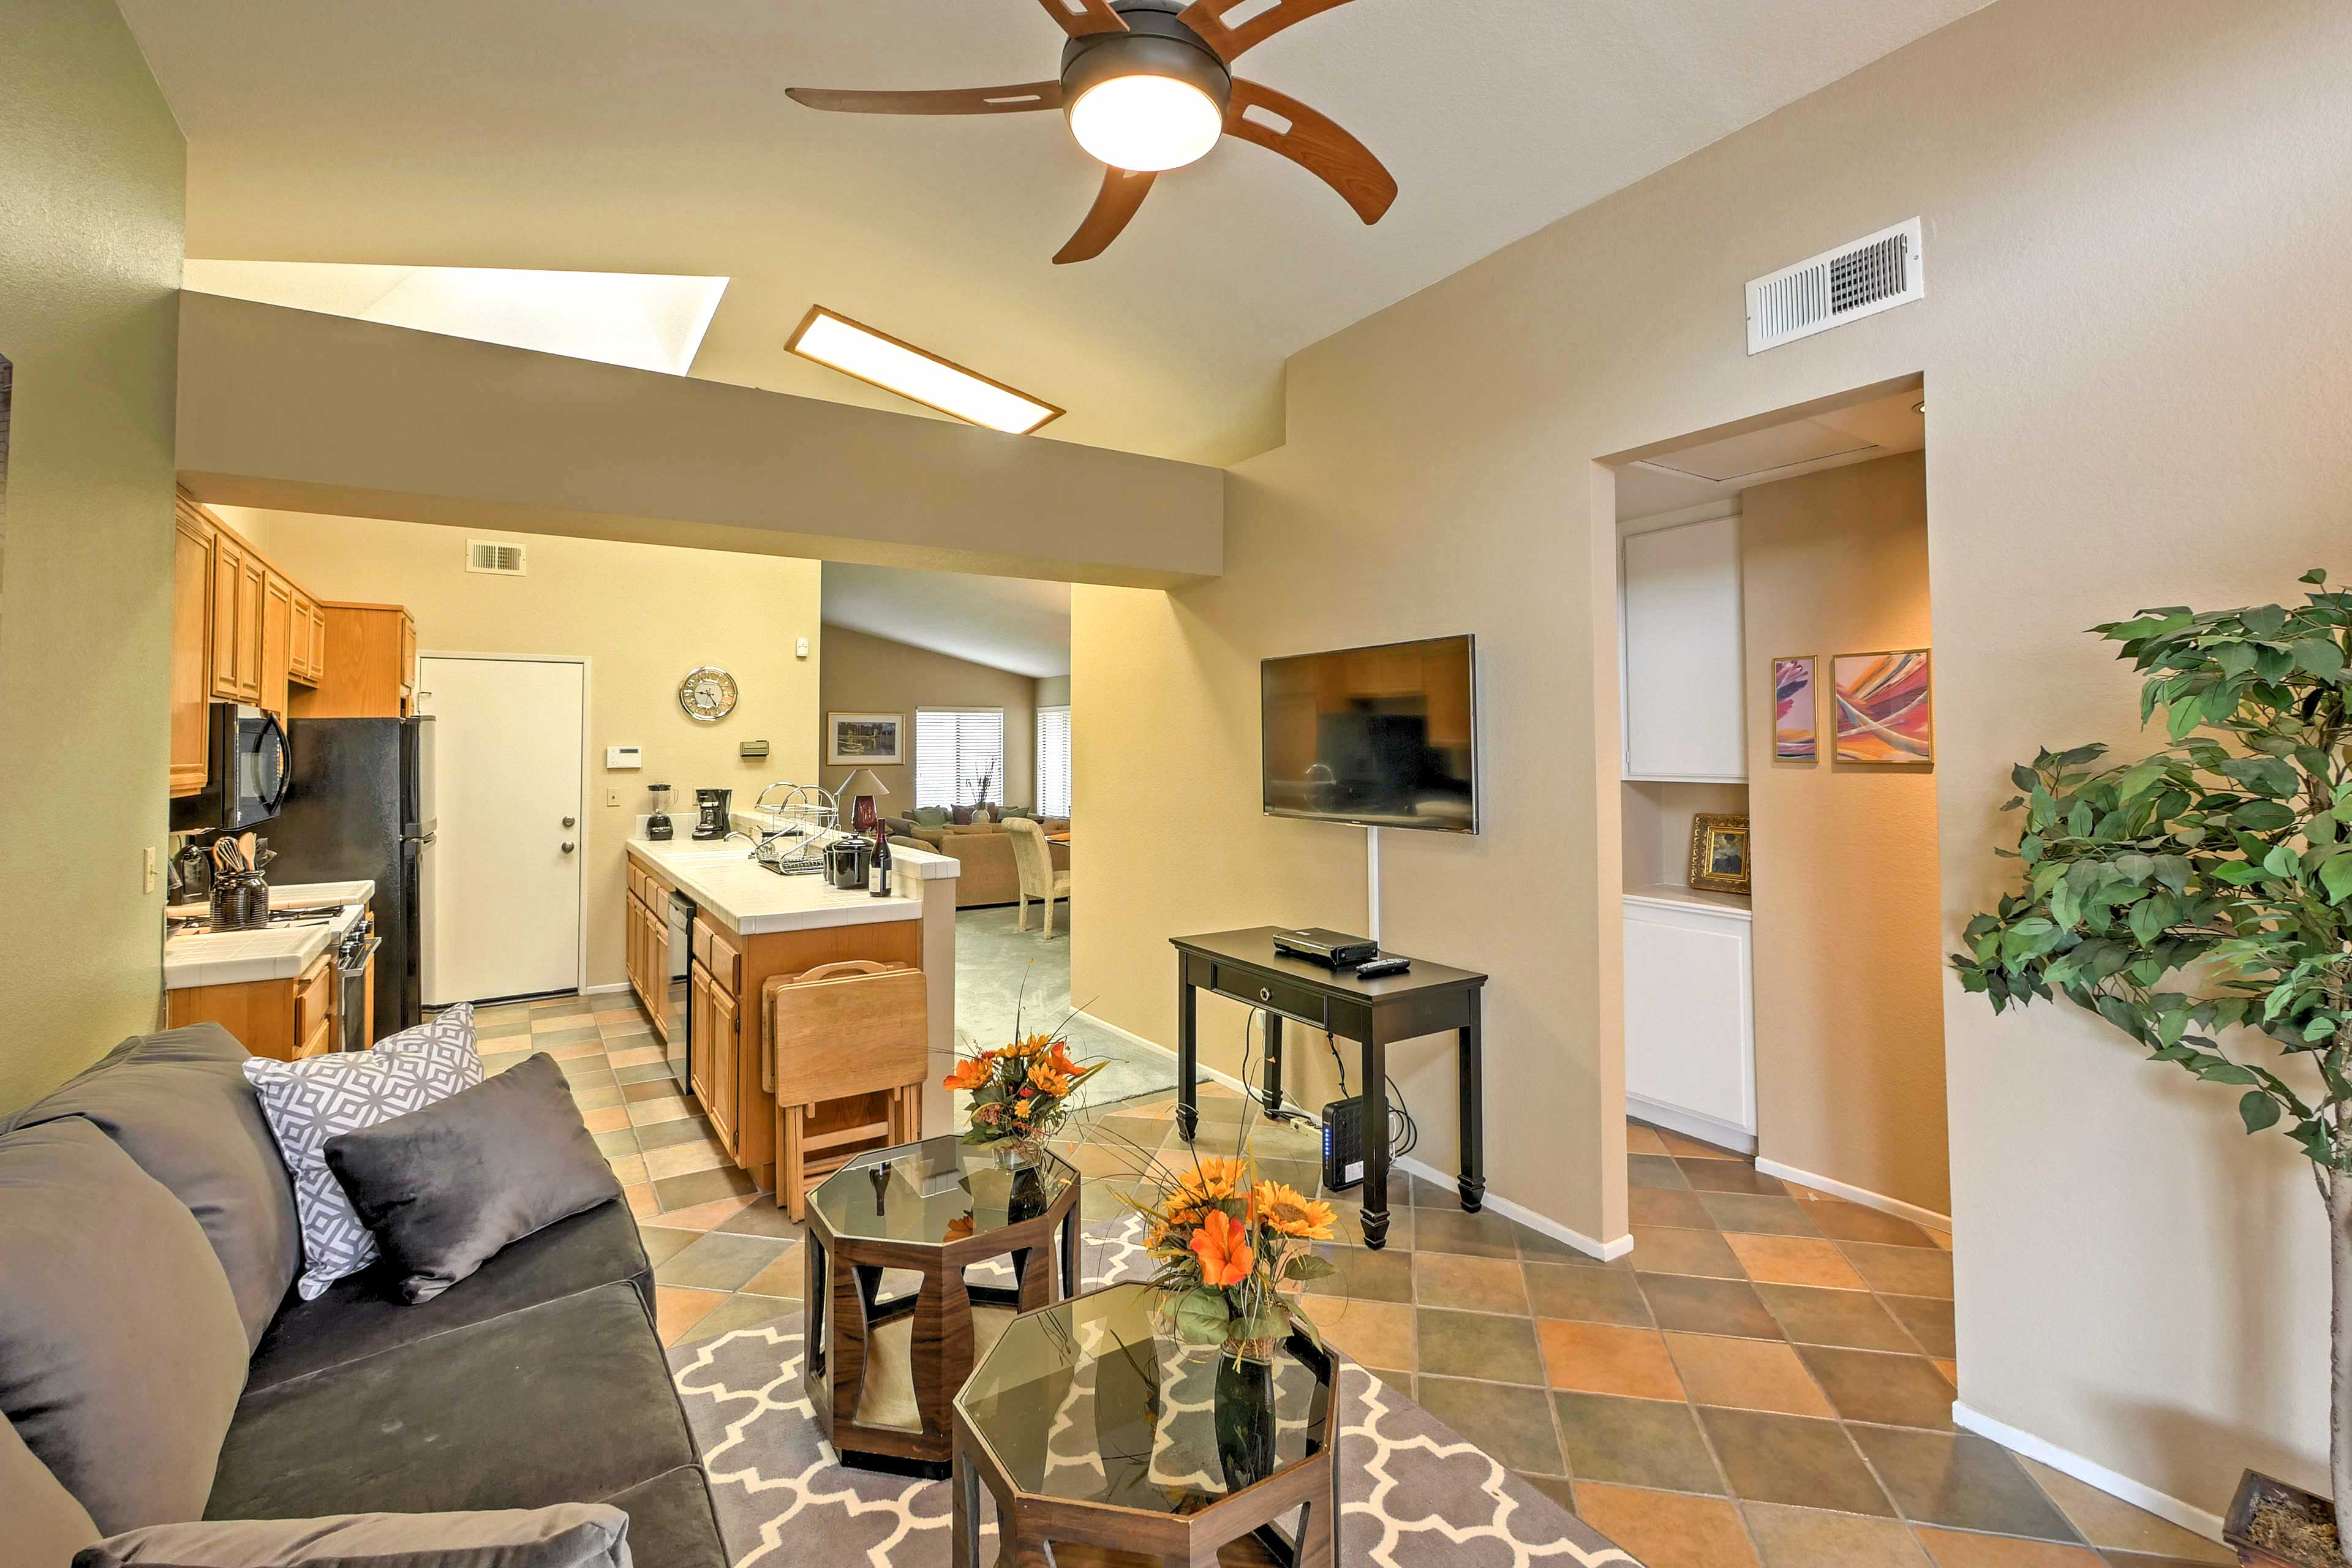 The open kitchen and dining room area is great for visiting with loved ones.